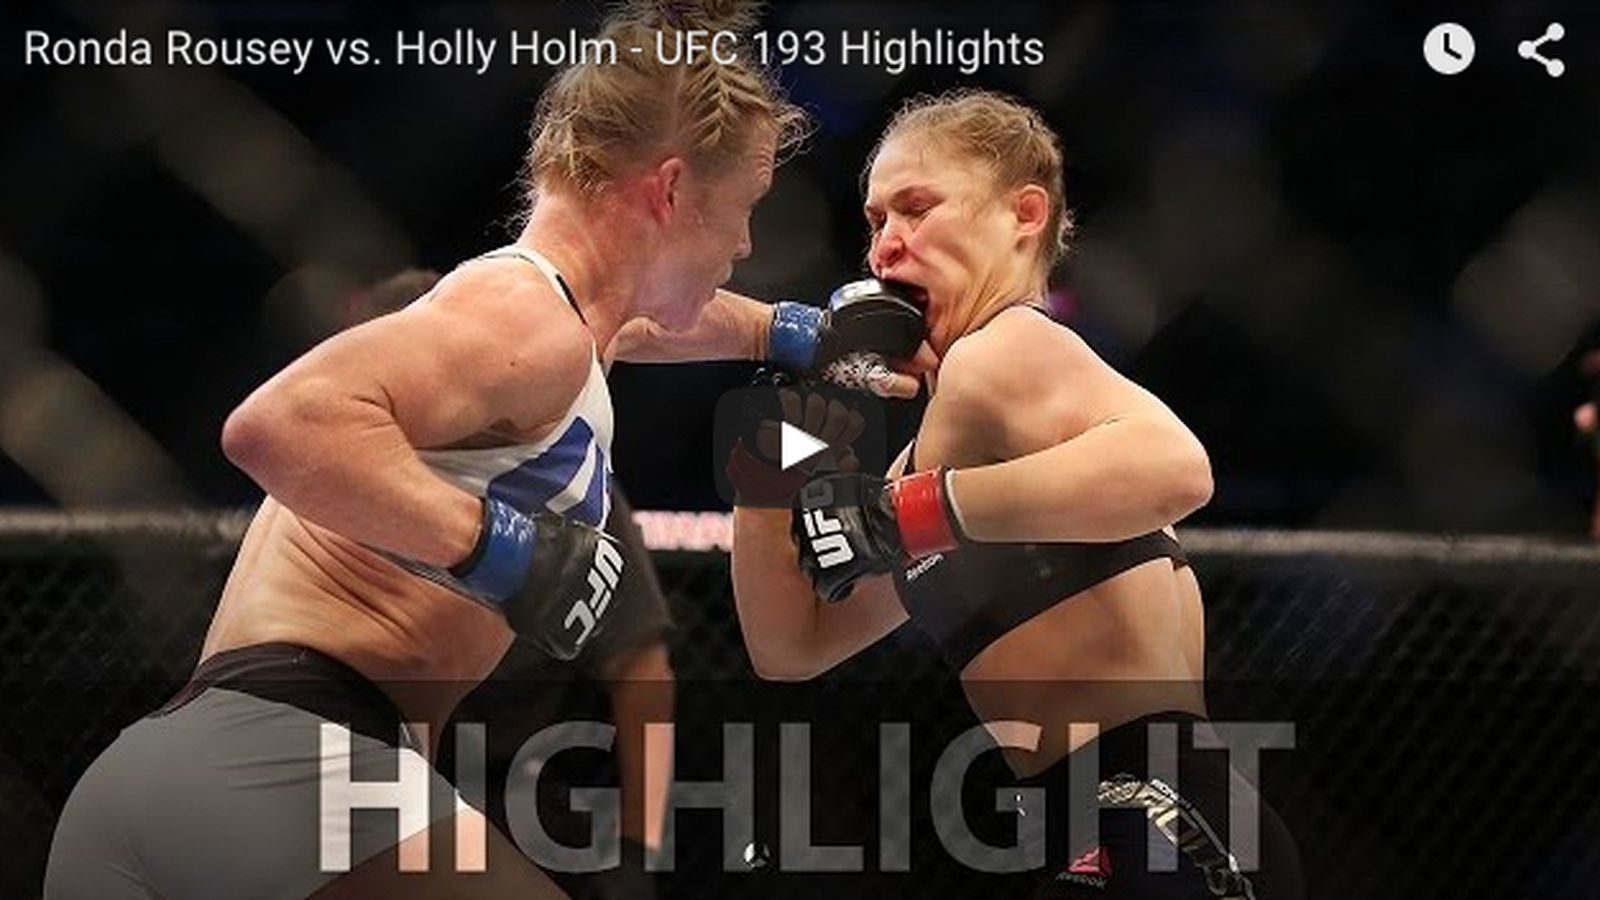 ronda rousey vs holly holm 1080p torrent